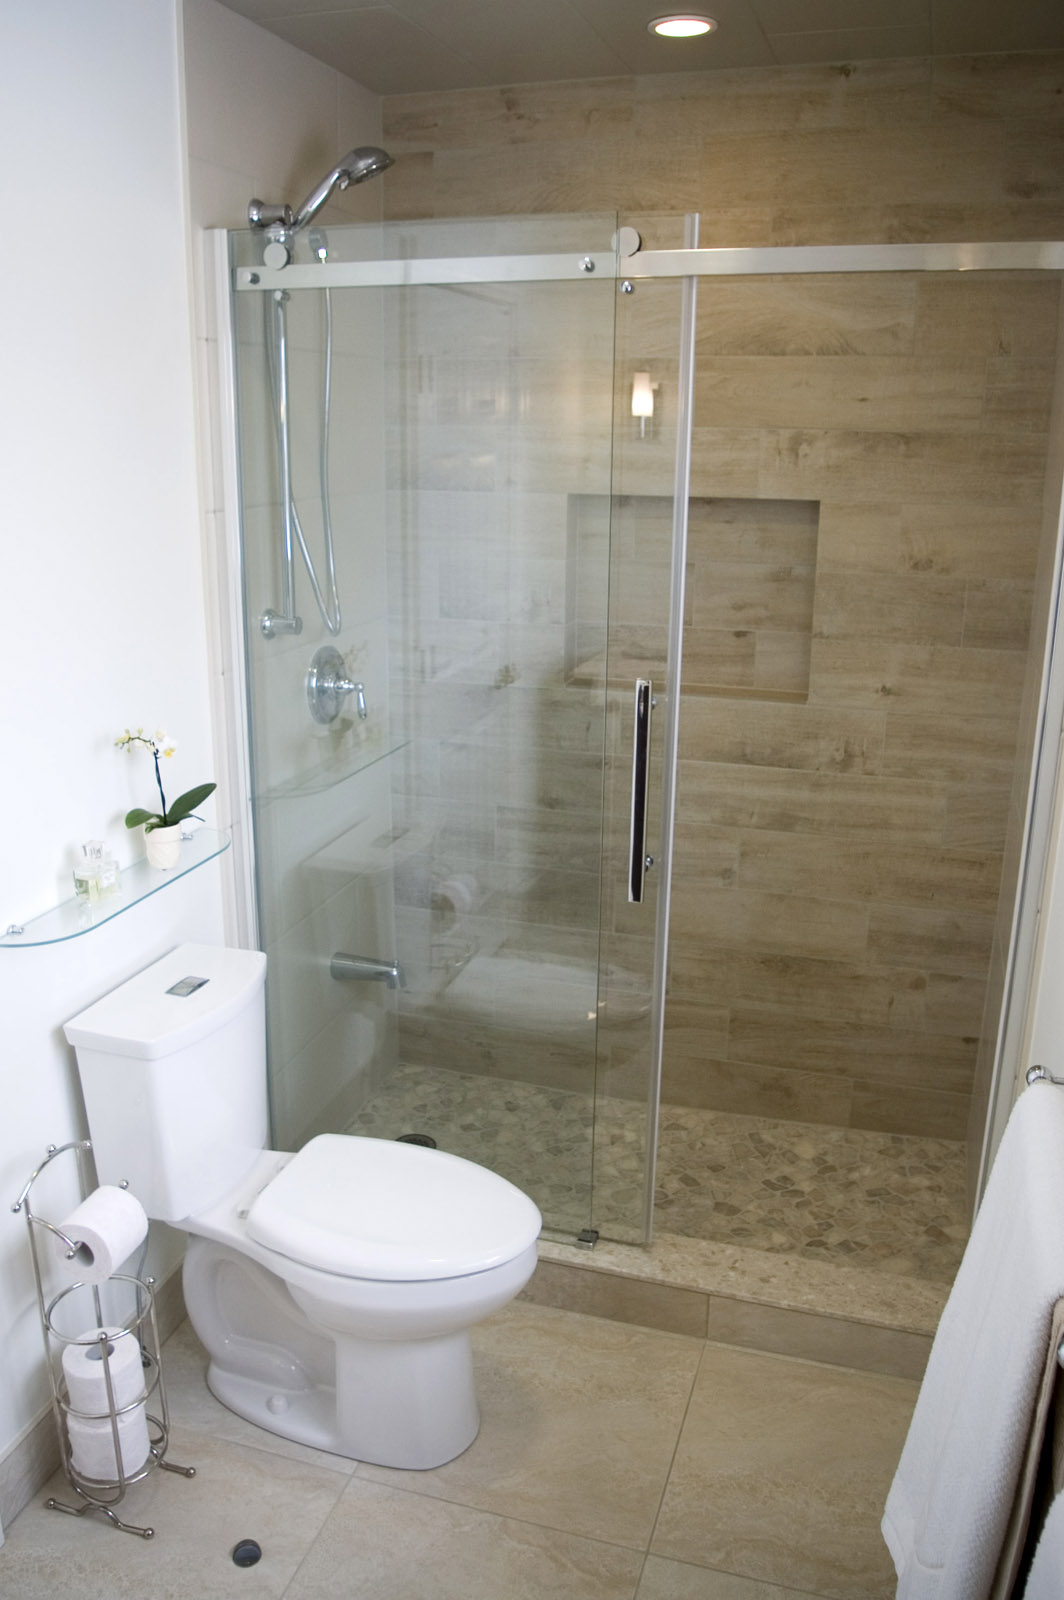 Ensuite Bathroom Update - Design & Construction of Inspired Spaces